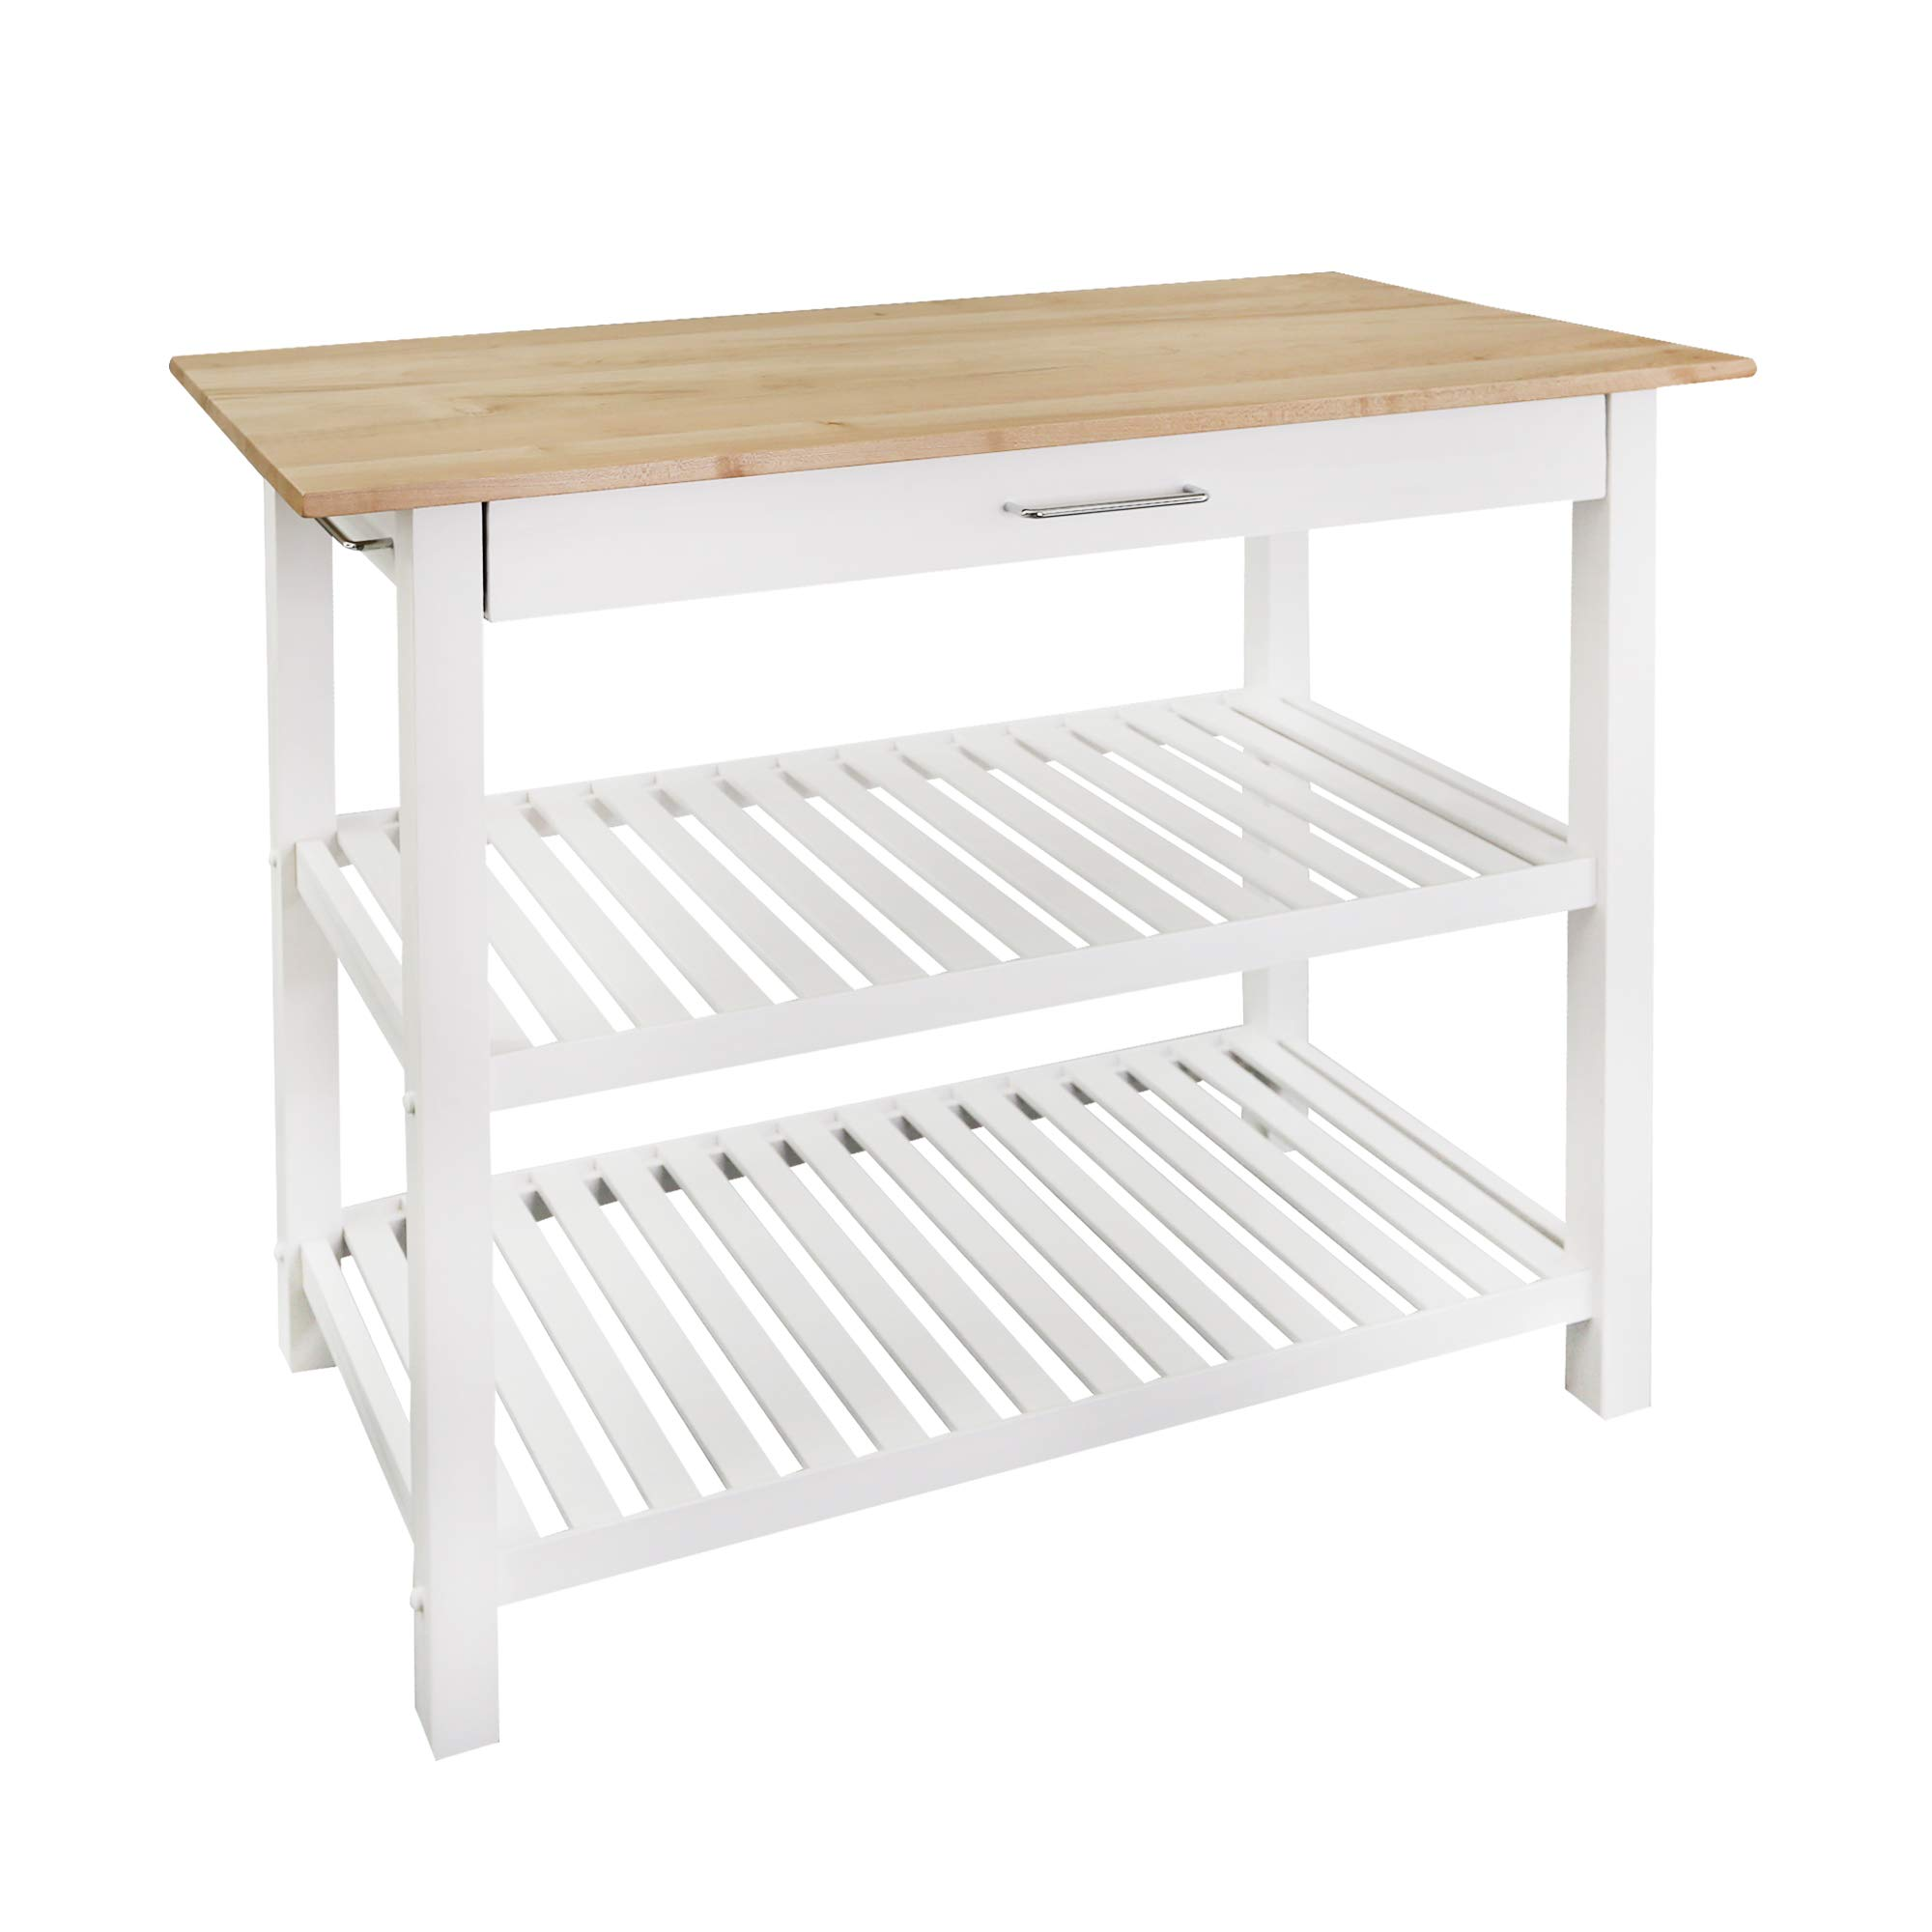 Casual Home Kitchen Island with Solid American Hardwood Top, White by Casual Home